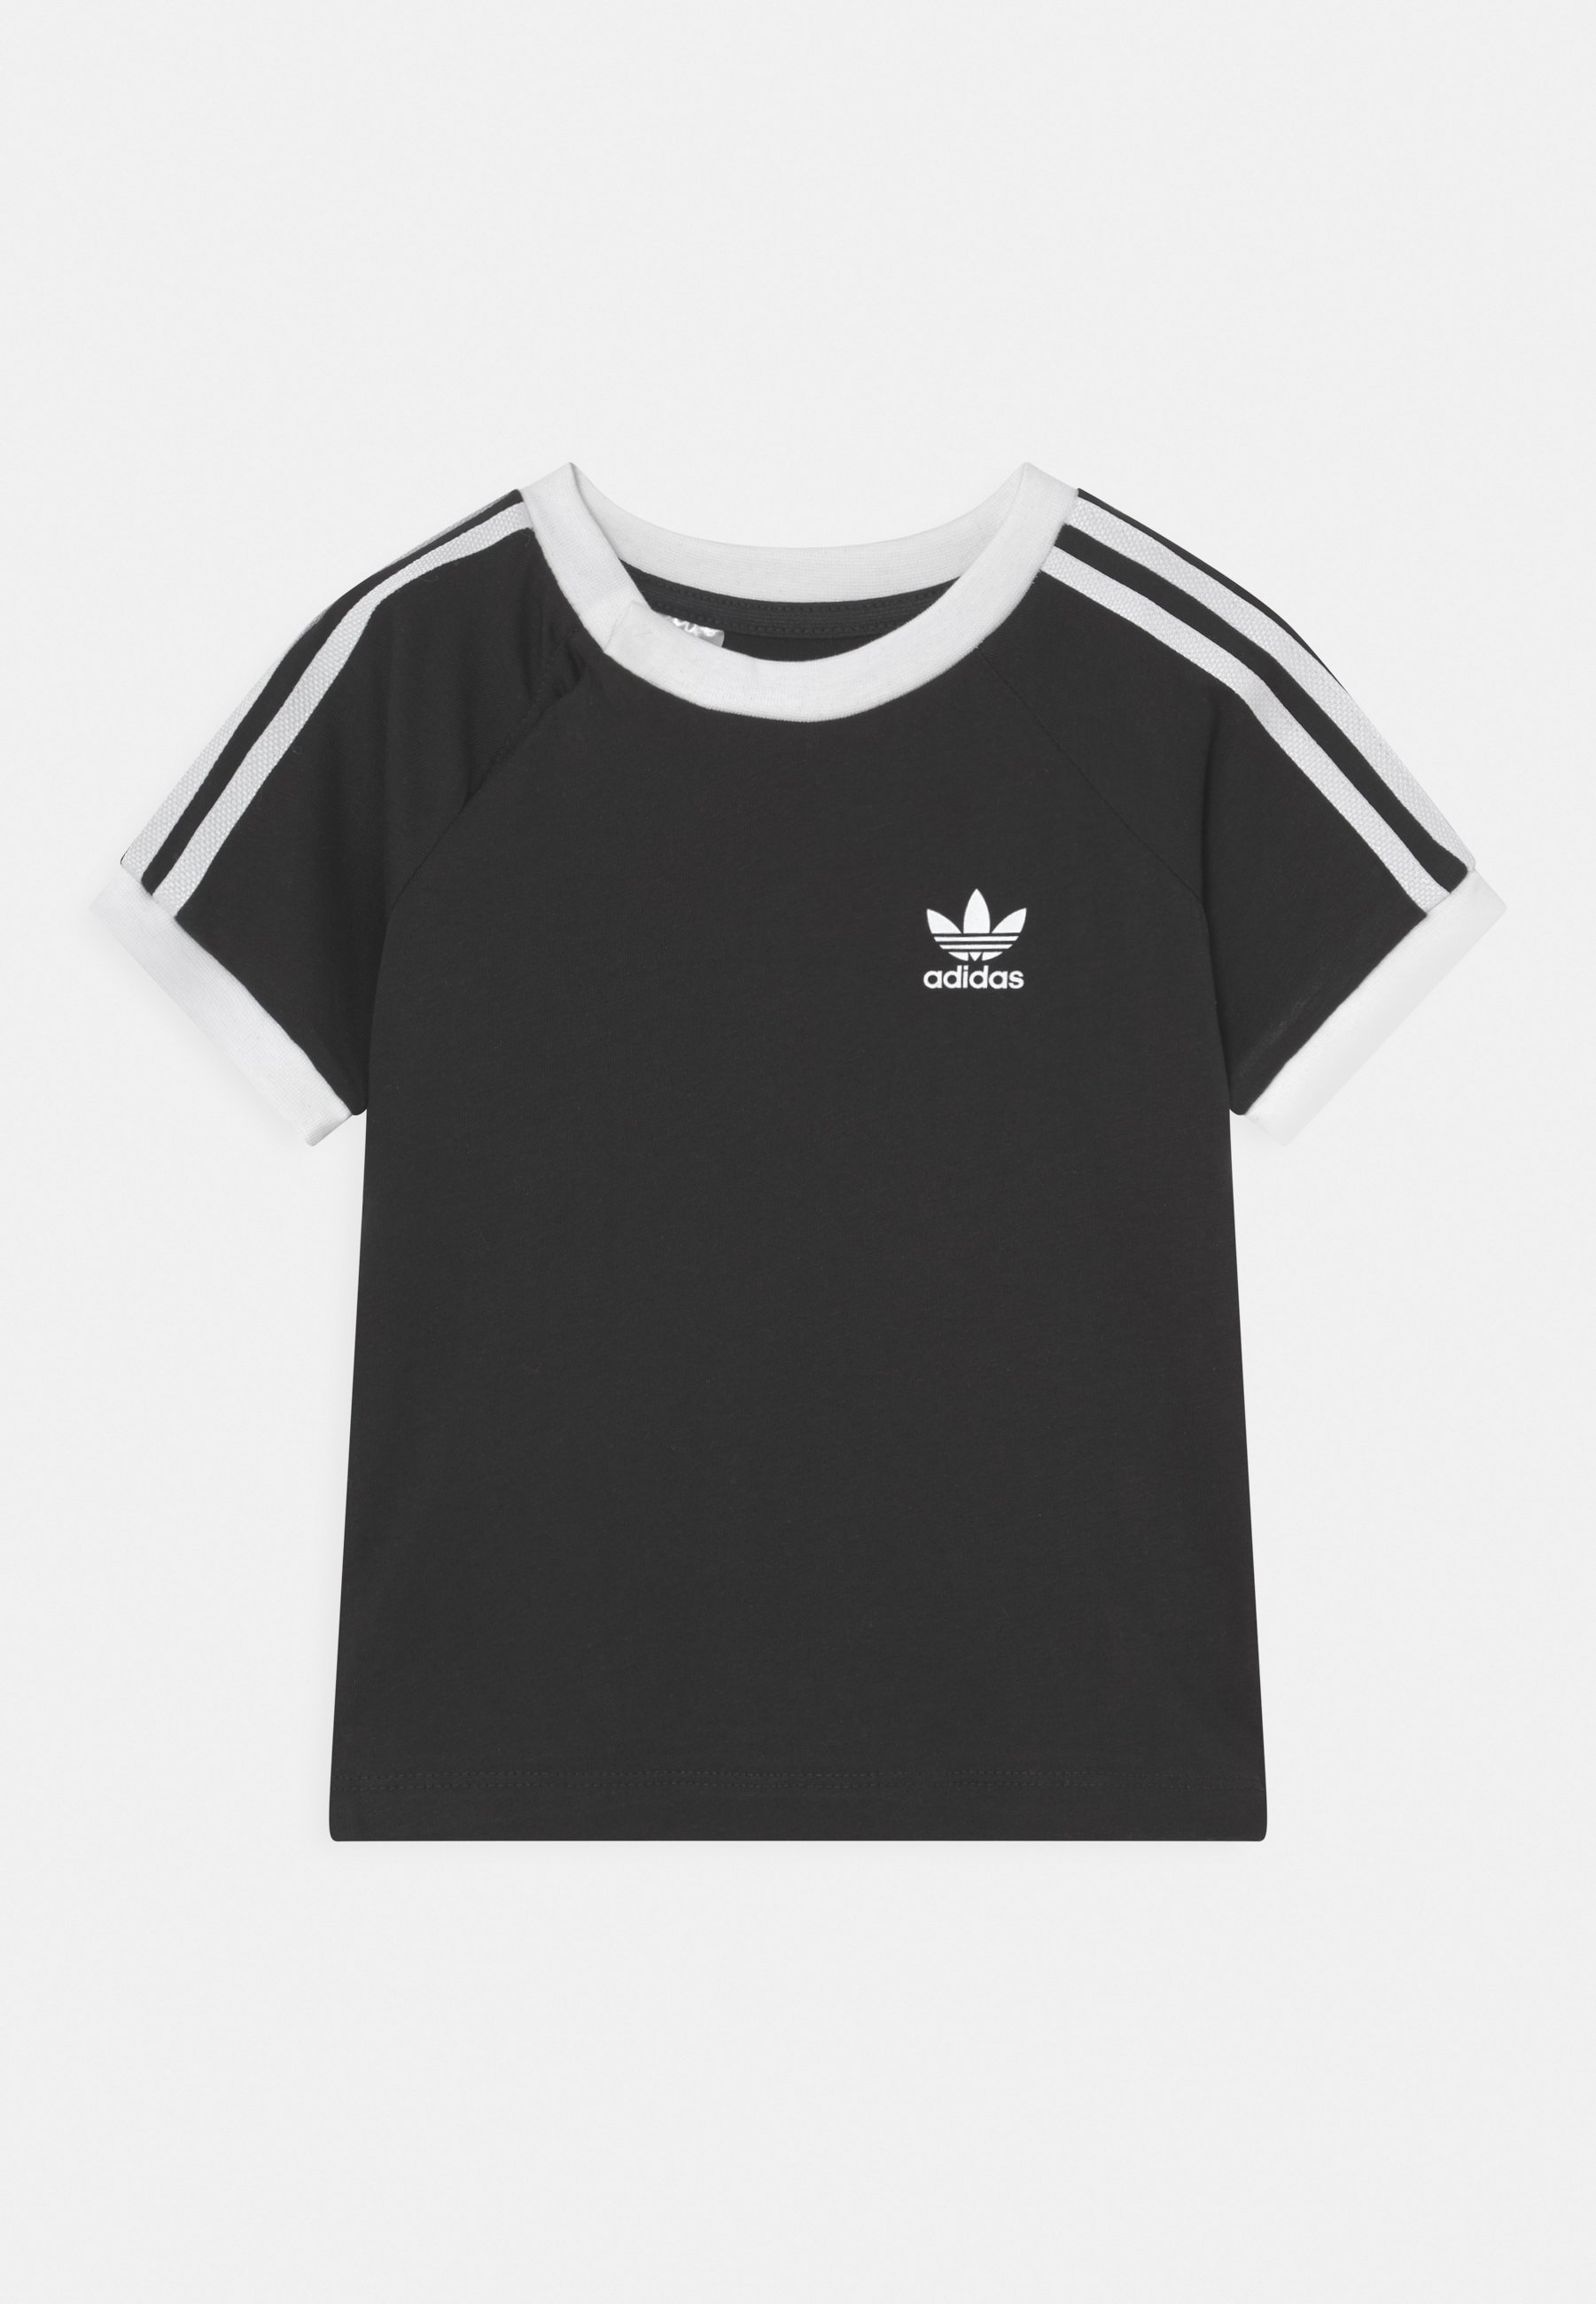 Bambini 3 STRIPES TEE UNISEX - T-shirt con stampa